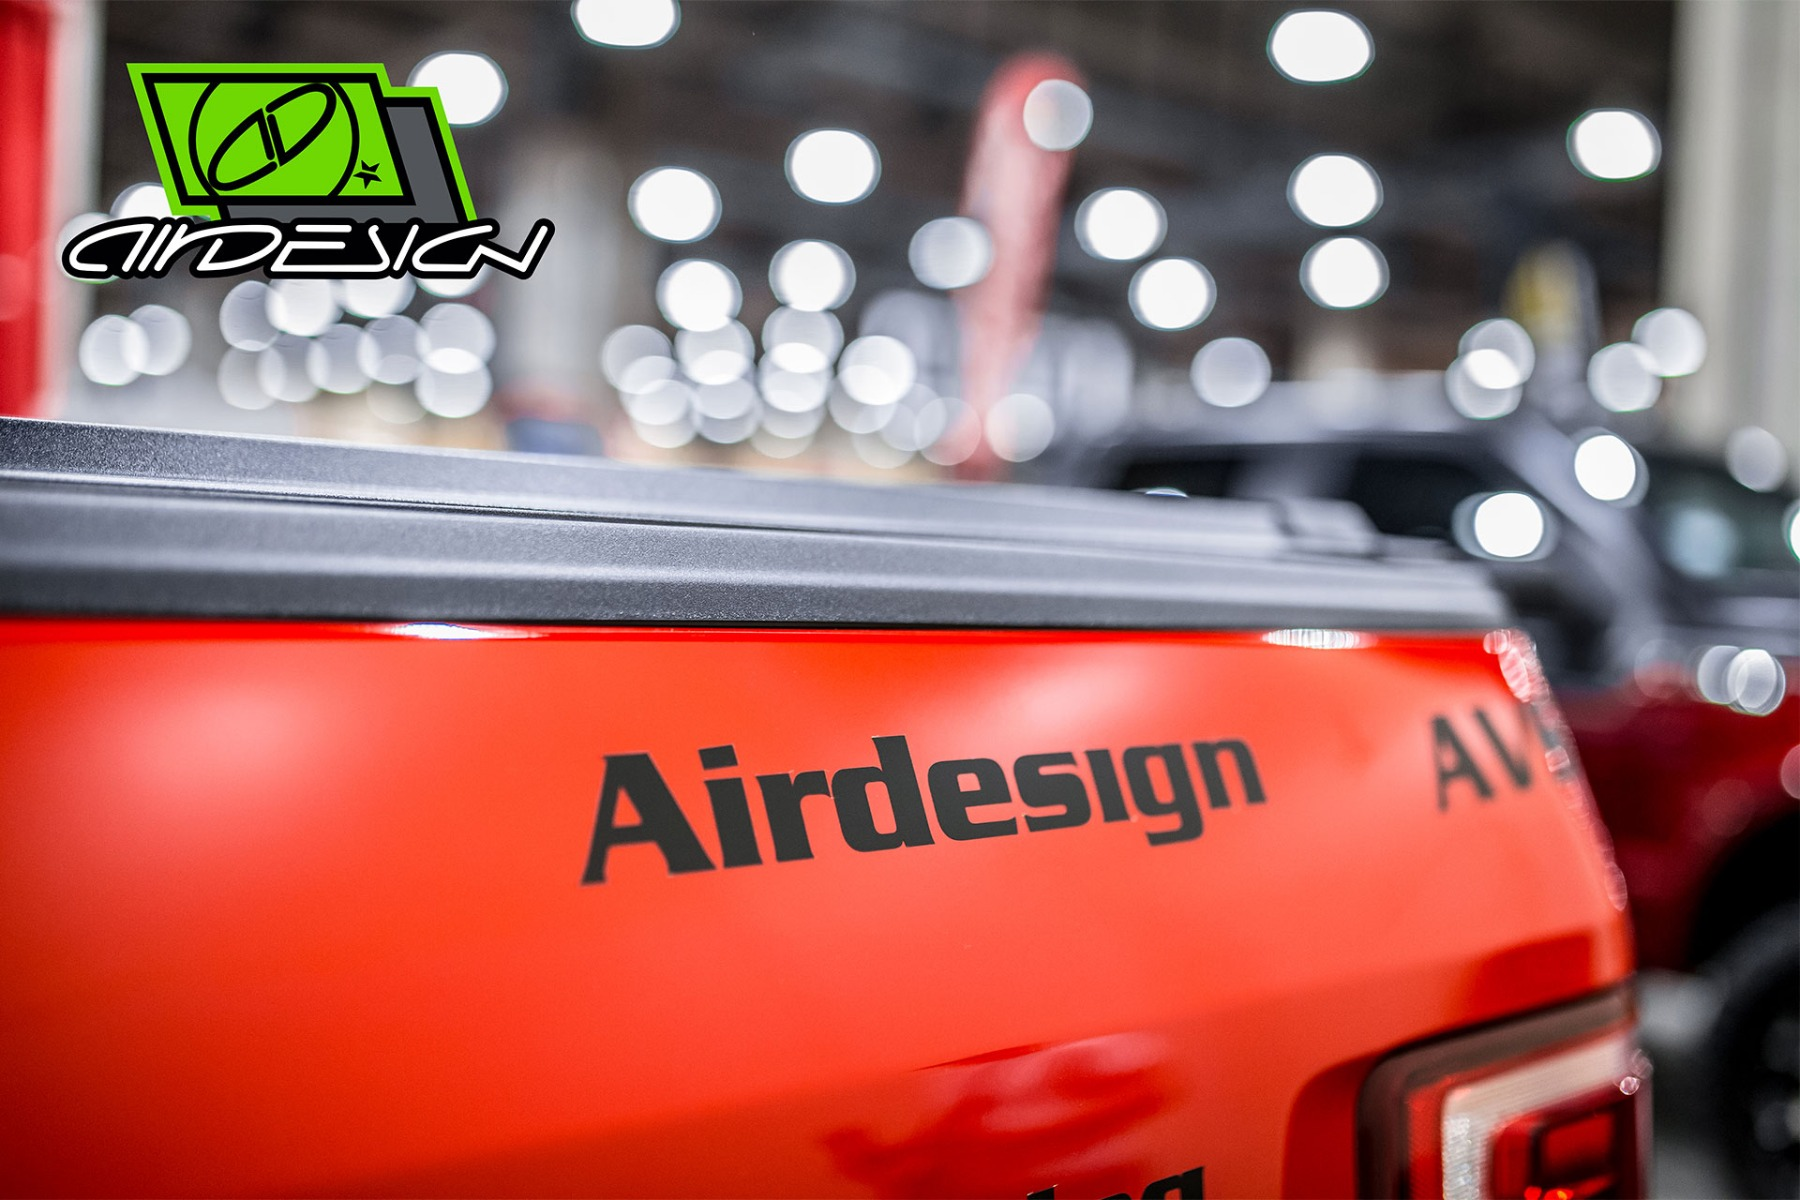 Air Design Ford F-150 Off Road Sticker